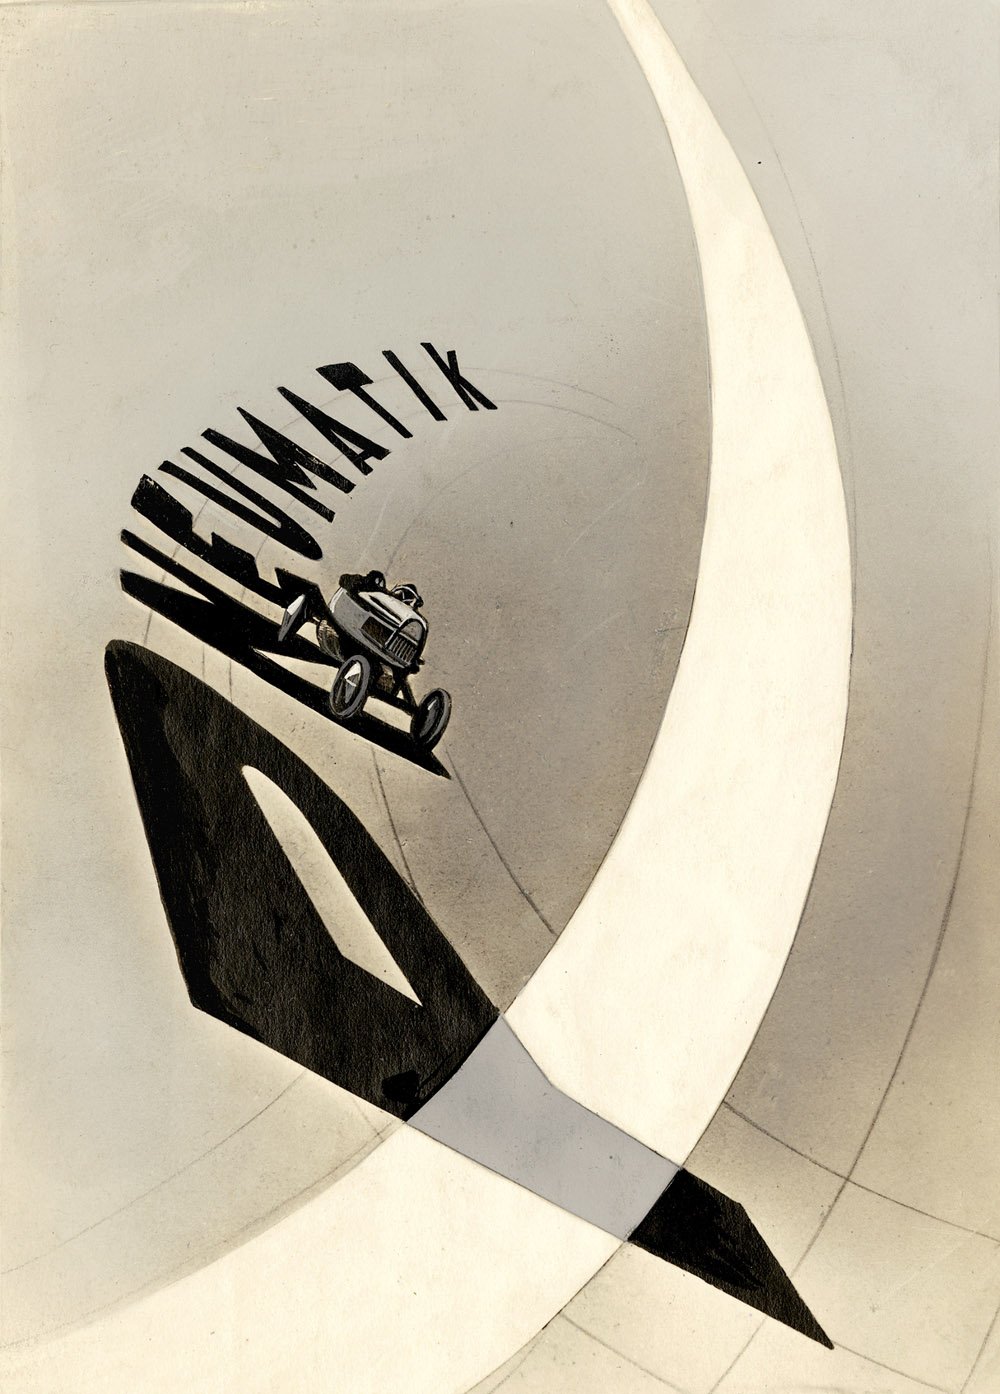 a biography and the works of laszlo moholy nagy and the bauhaus